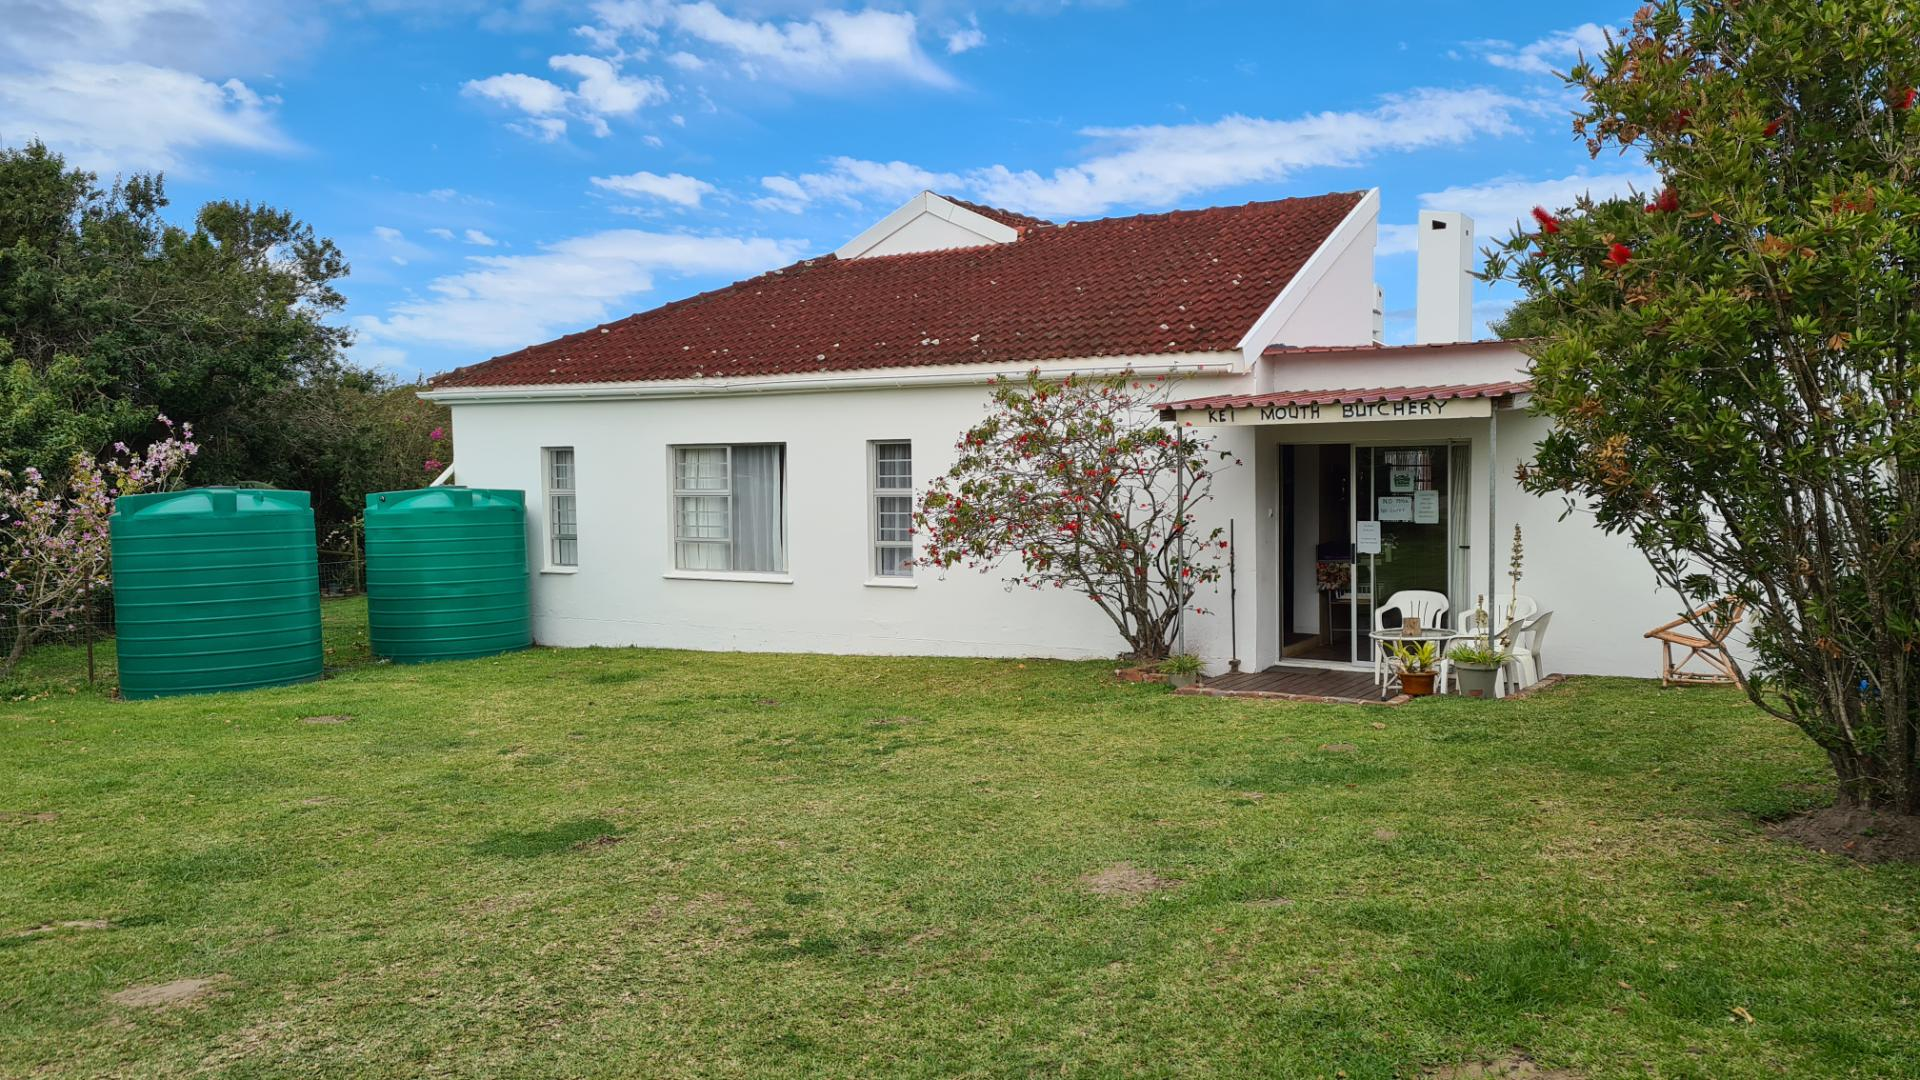 4 Bedroom House For Sale in Kei Mouth